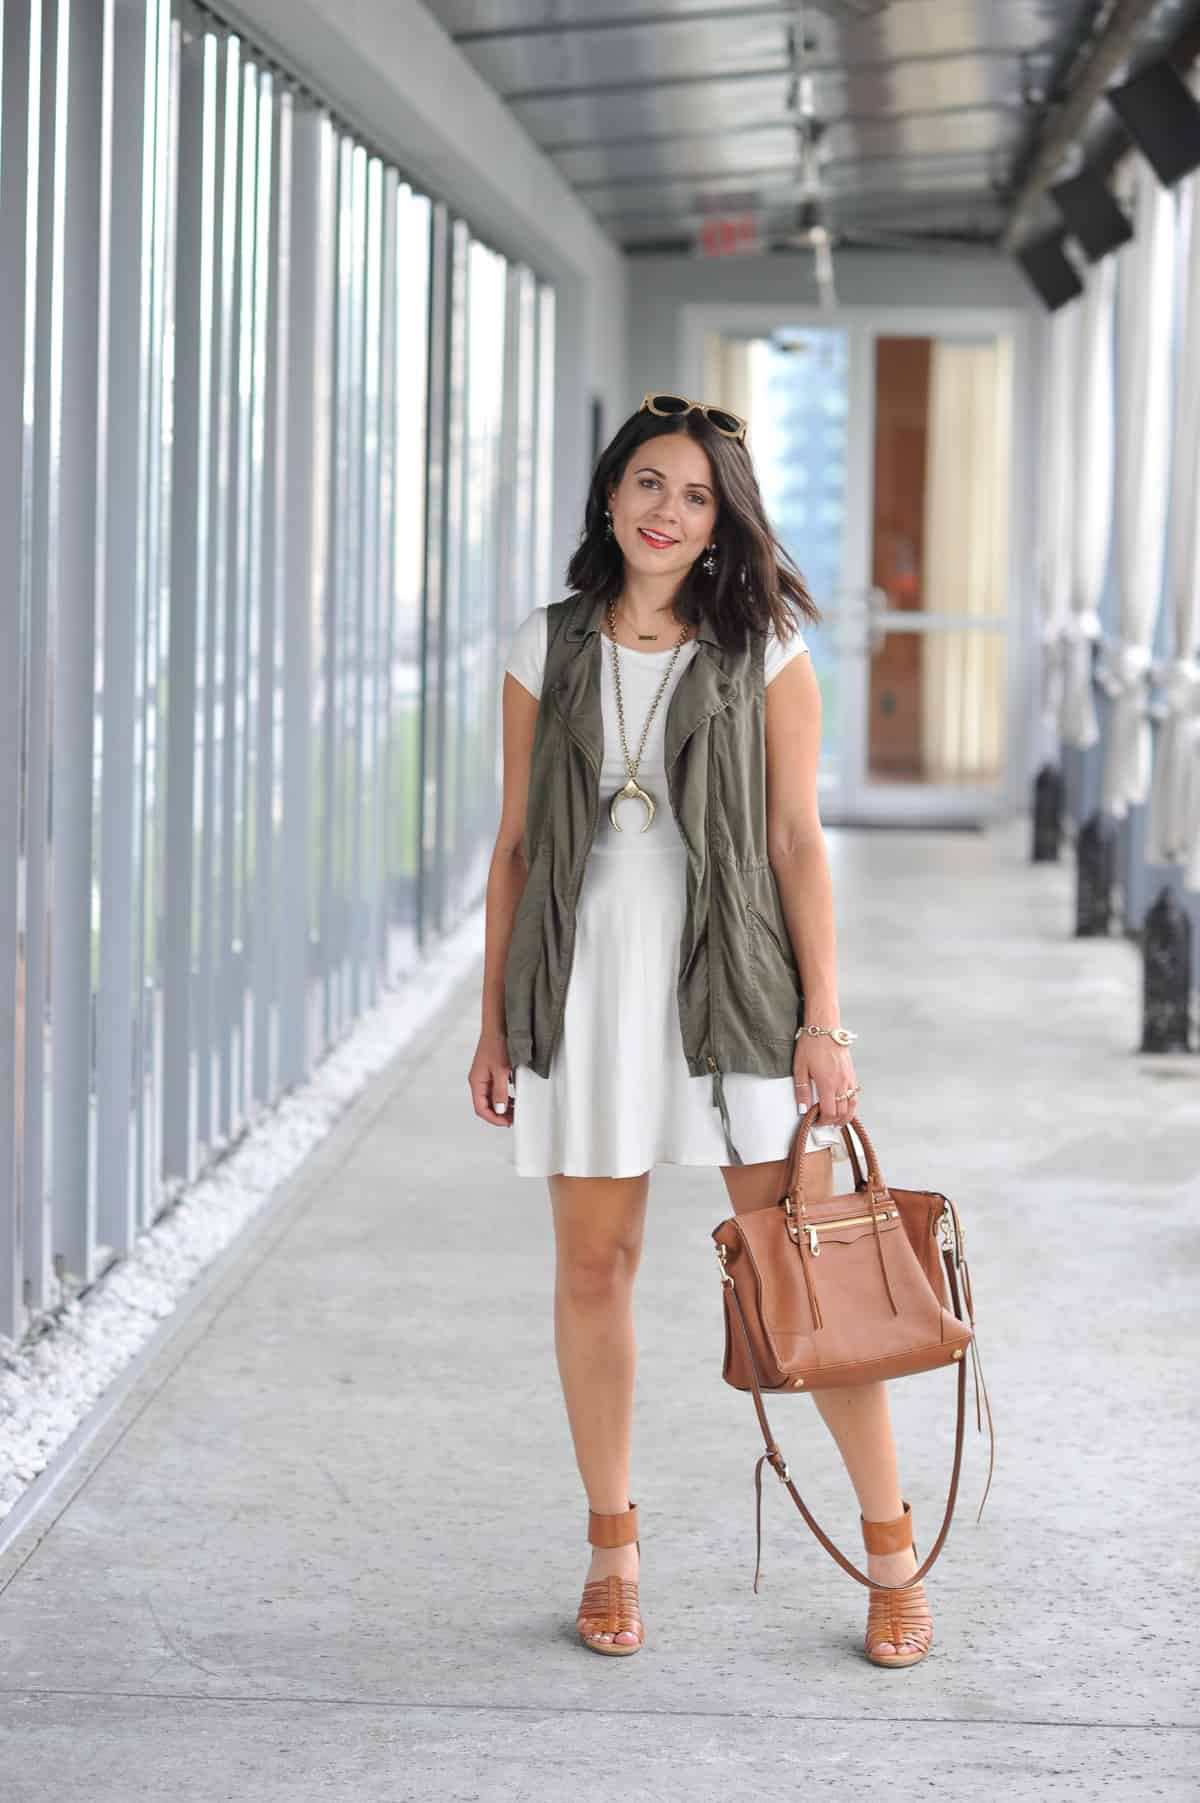 how to style a vest for summer - My Style Vita @mystylevita - 11